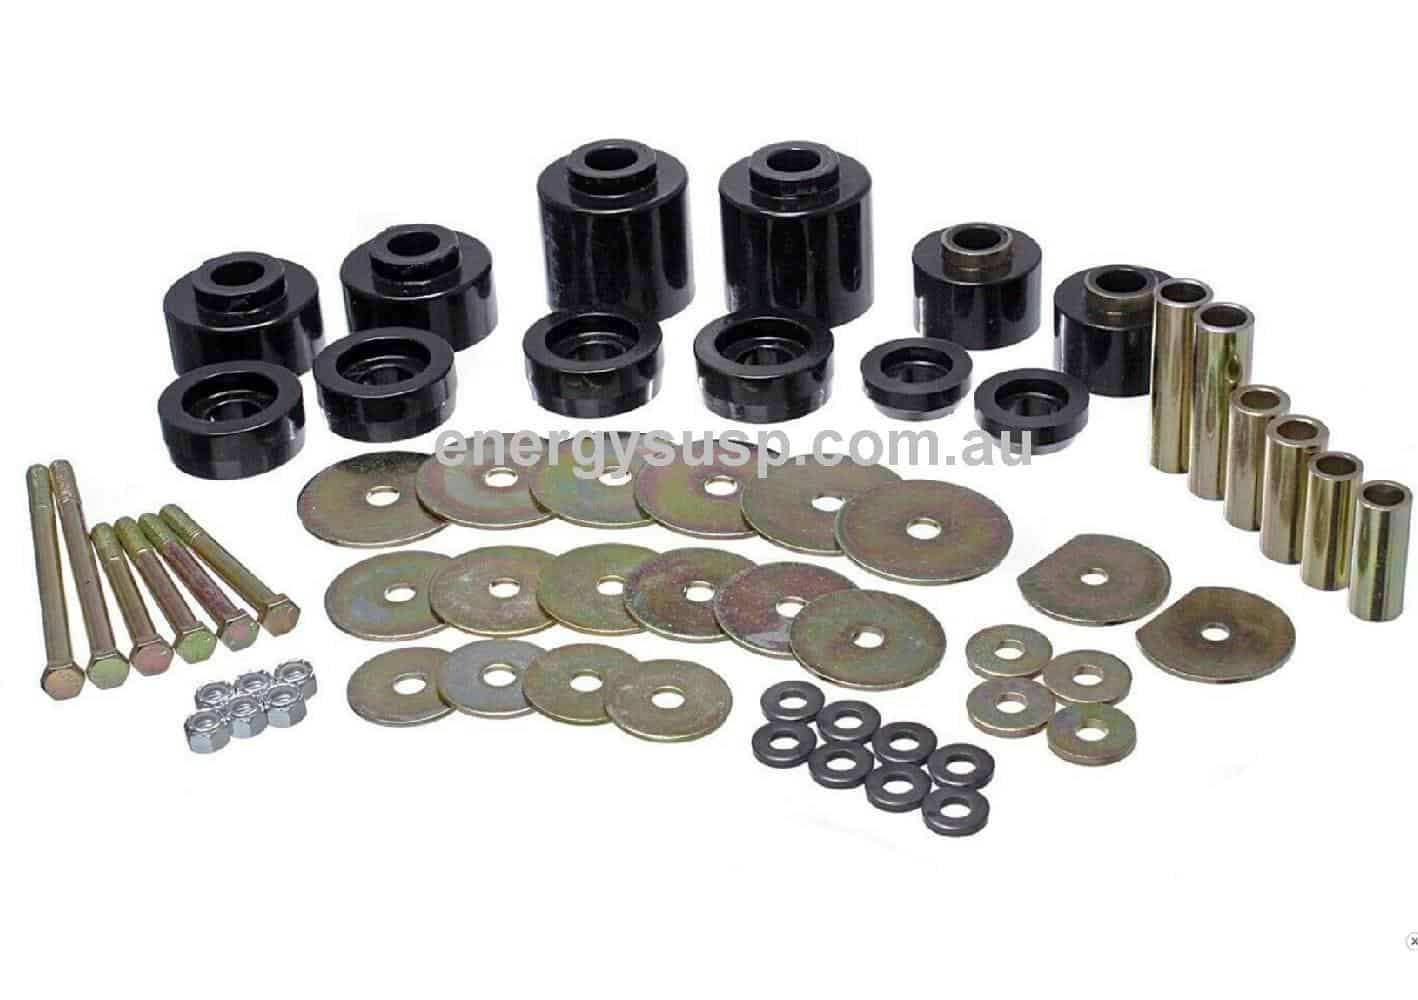 Body Mount kit:80-98 F-150 F-250 F-350